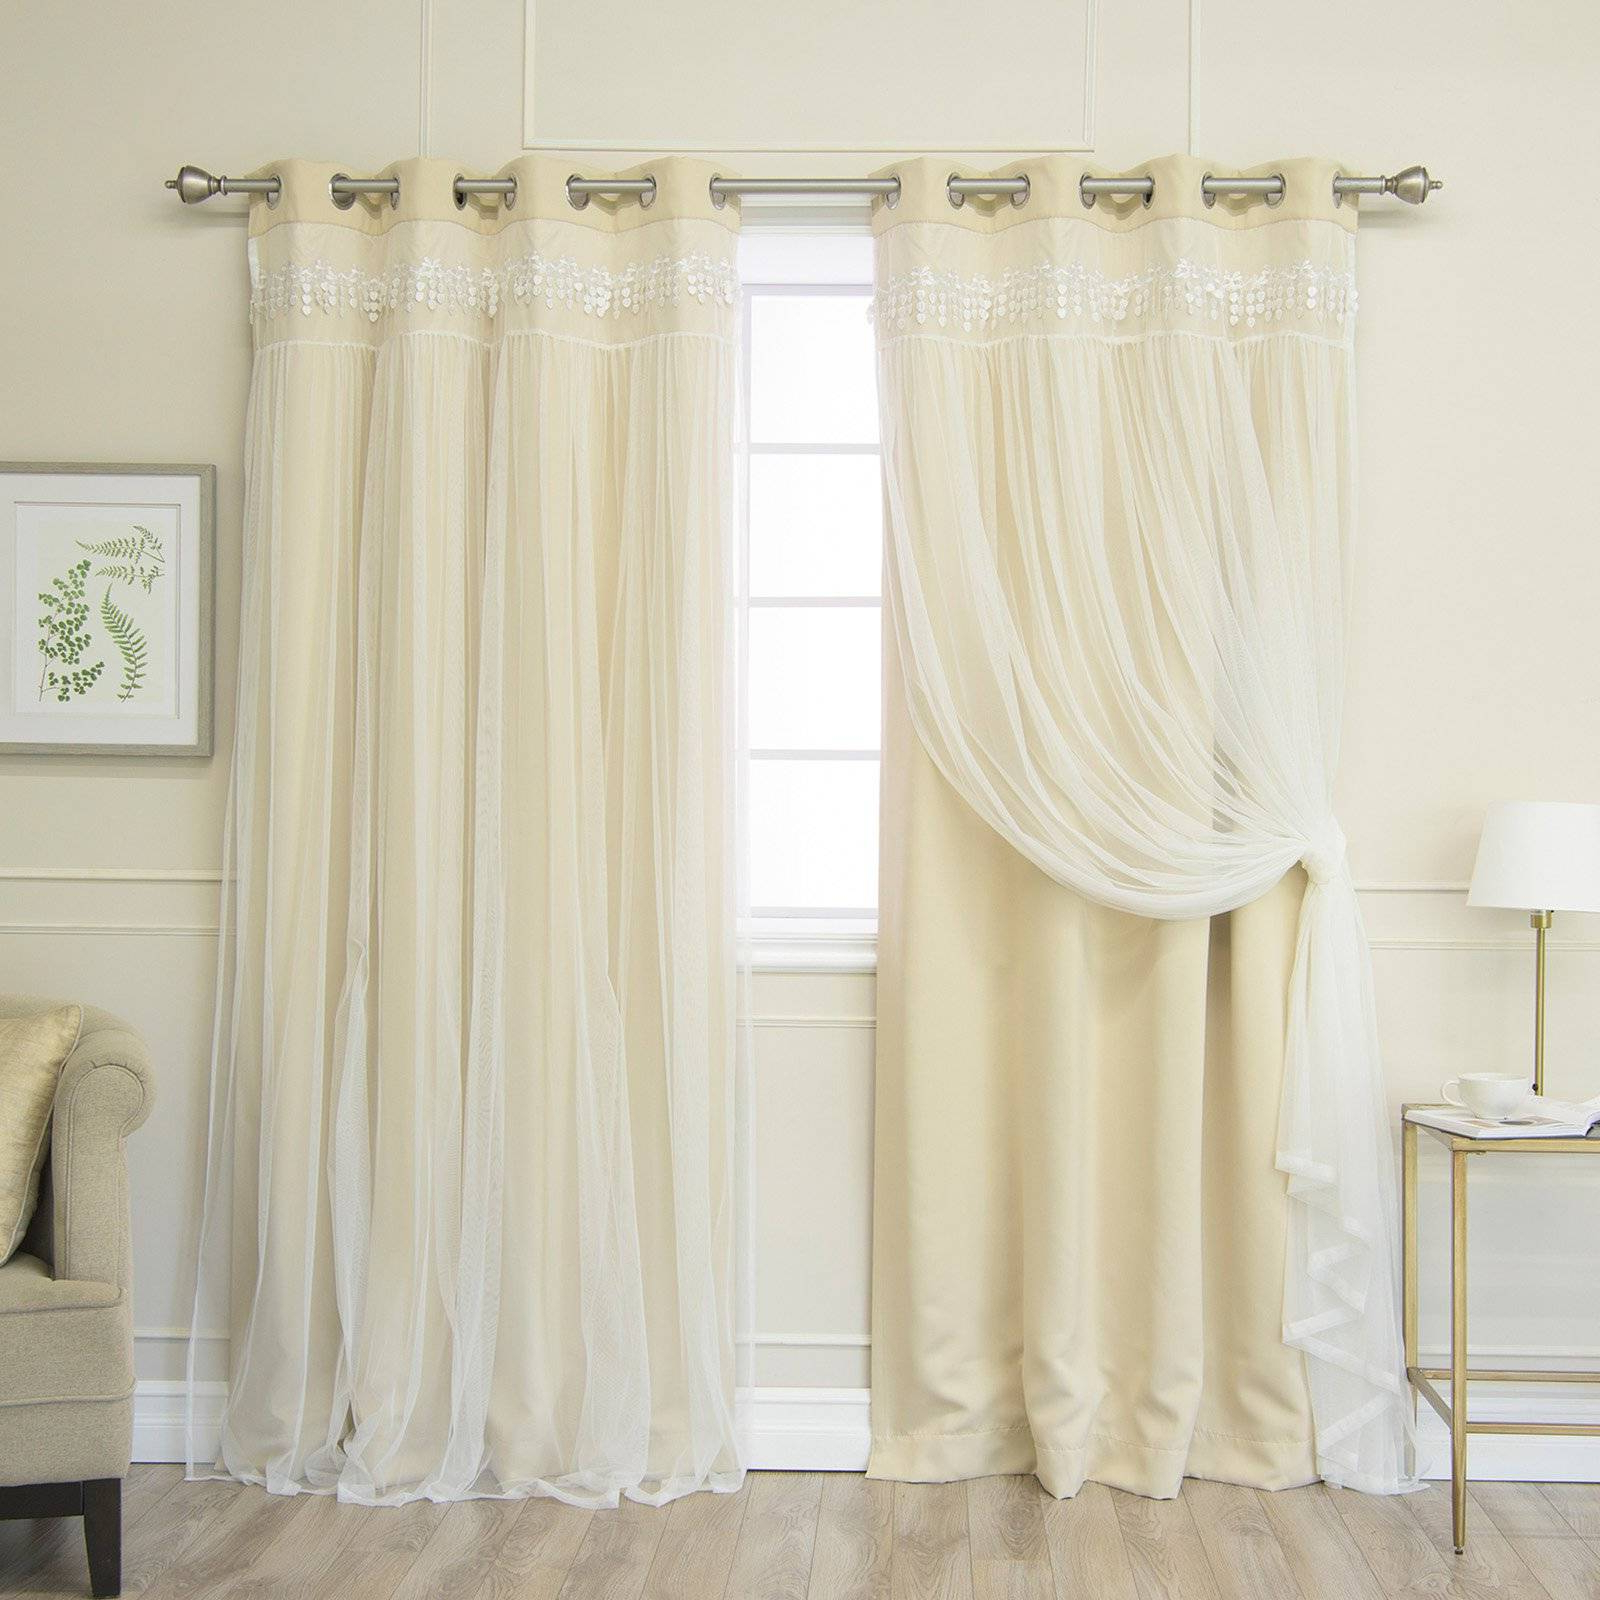 Country Style Curtain Parts With White Daisy Lace Accent Regarding Well Known Pretty Country Lace Curtains Swags For Living Room Catalog (View 13 of 20)